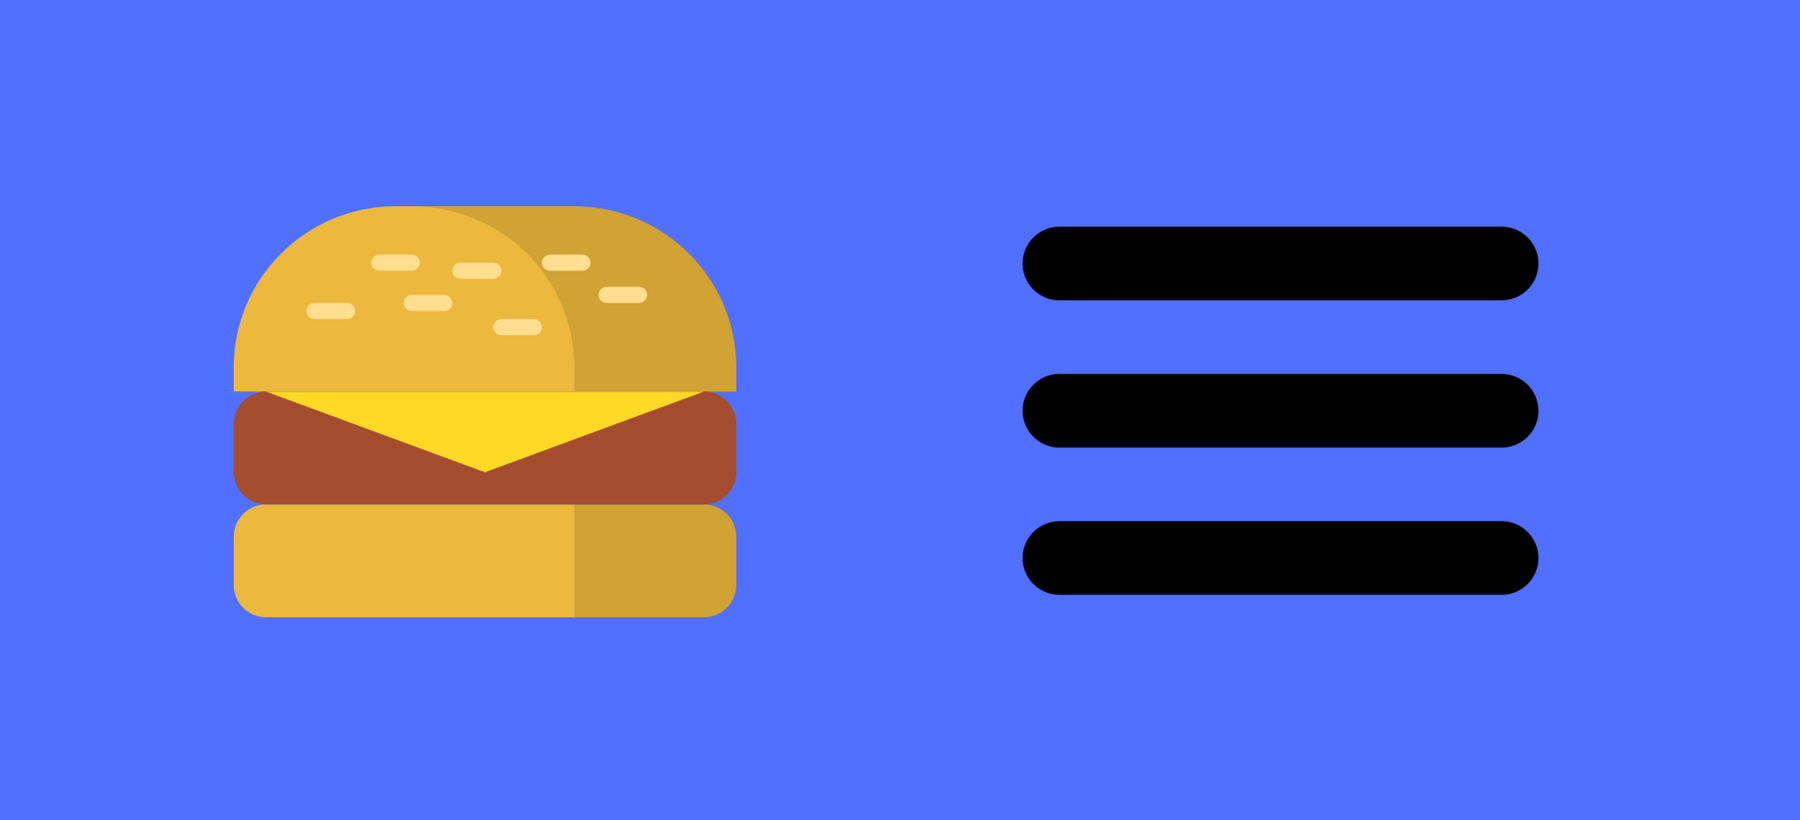 Tendințe în webdesign: meniu hamburger